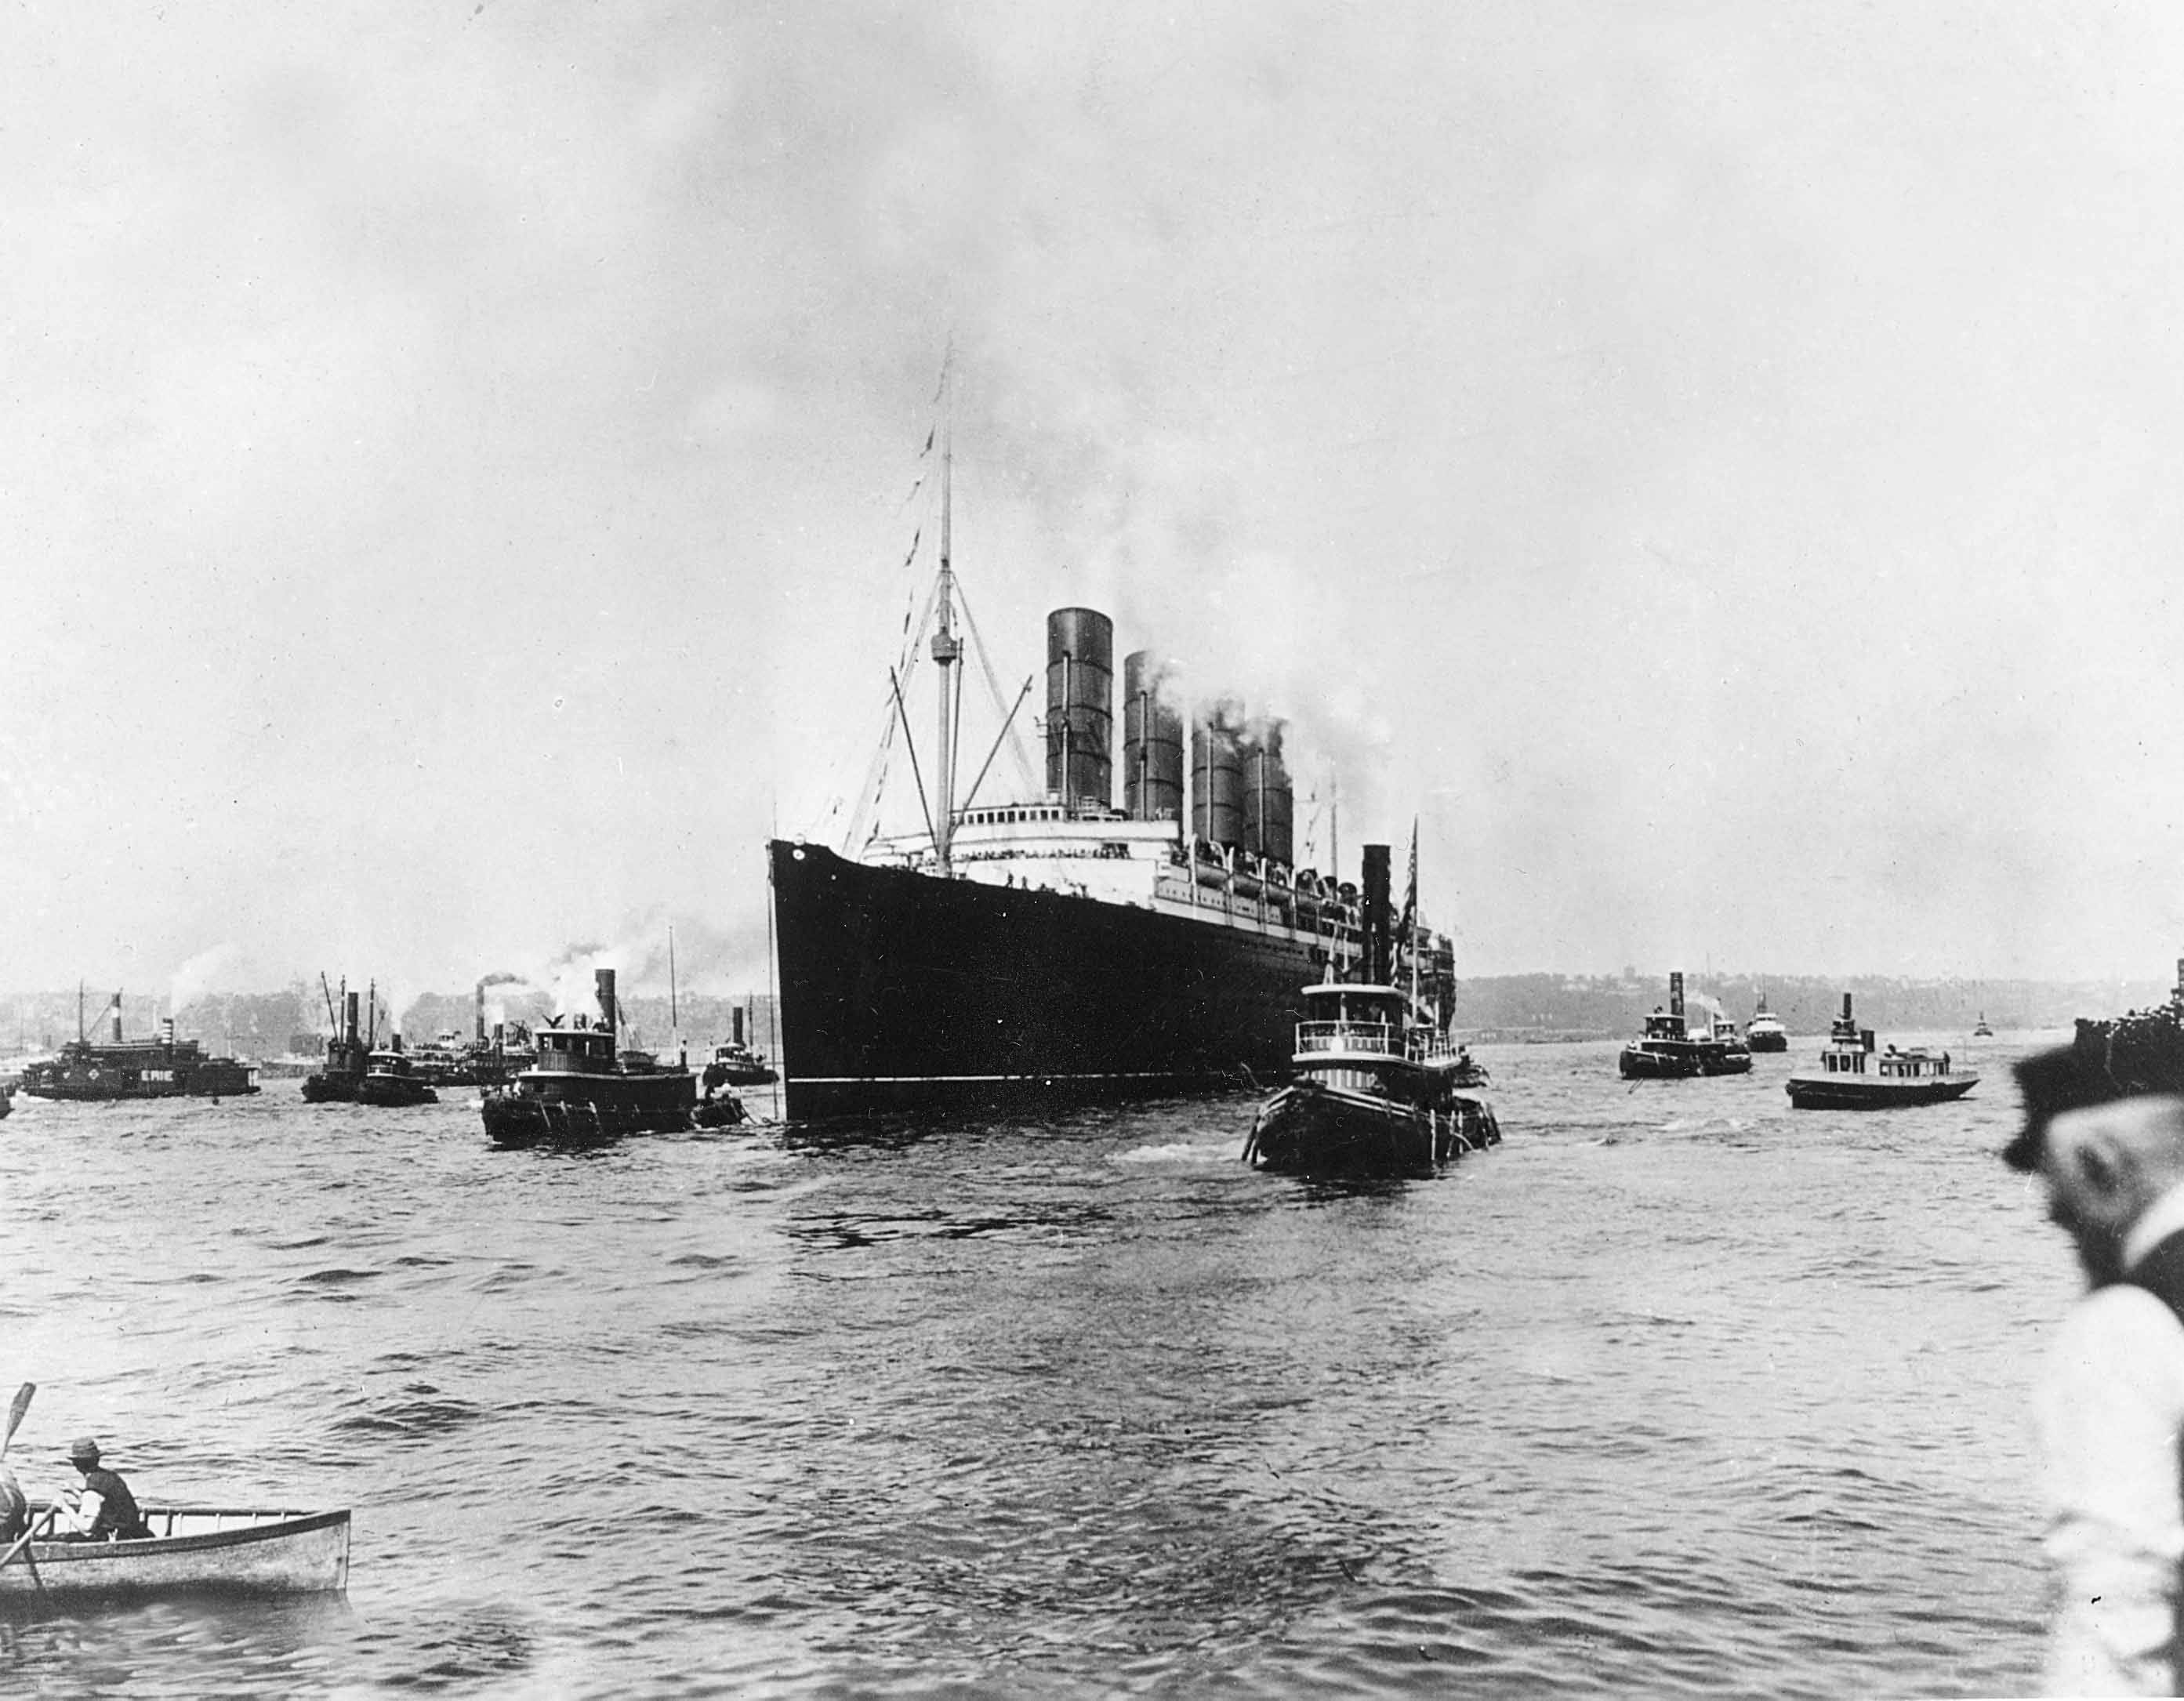 40 OF 100: In this May 1, 1915, file photo, the British cargo and passenger ship Lusitania as it sets out for England on its last voyage from New York City. The British ocean liner was sunk off Ireland on May 7, 1915, by a German U-Boat, killing 1,150 people, 114 of them Americans.